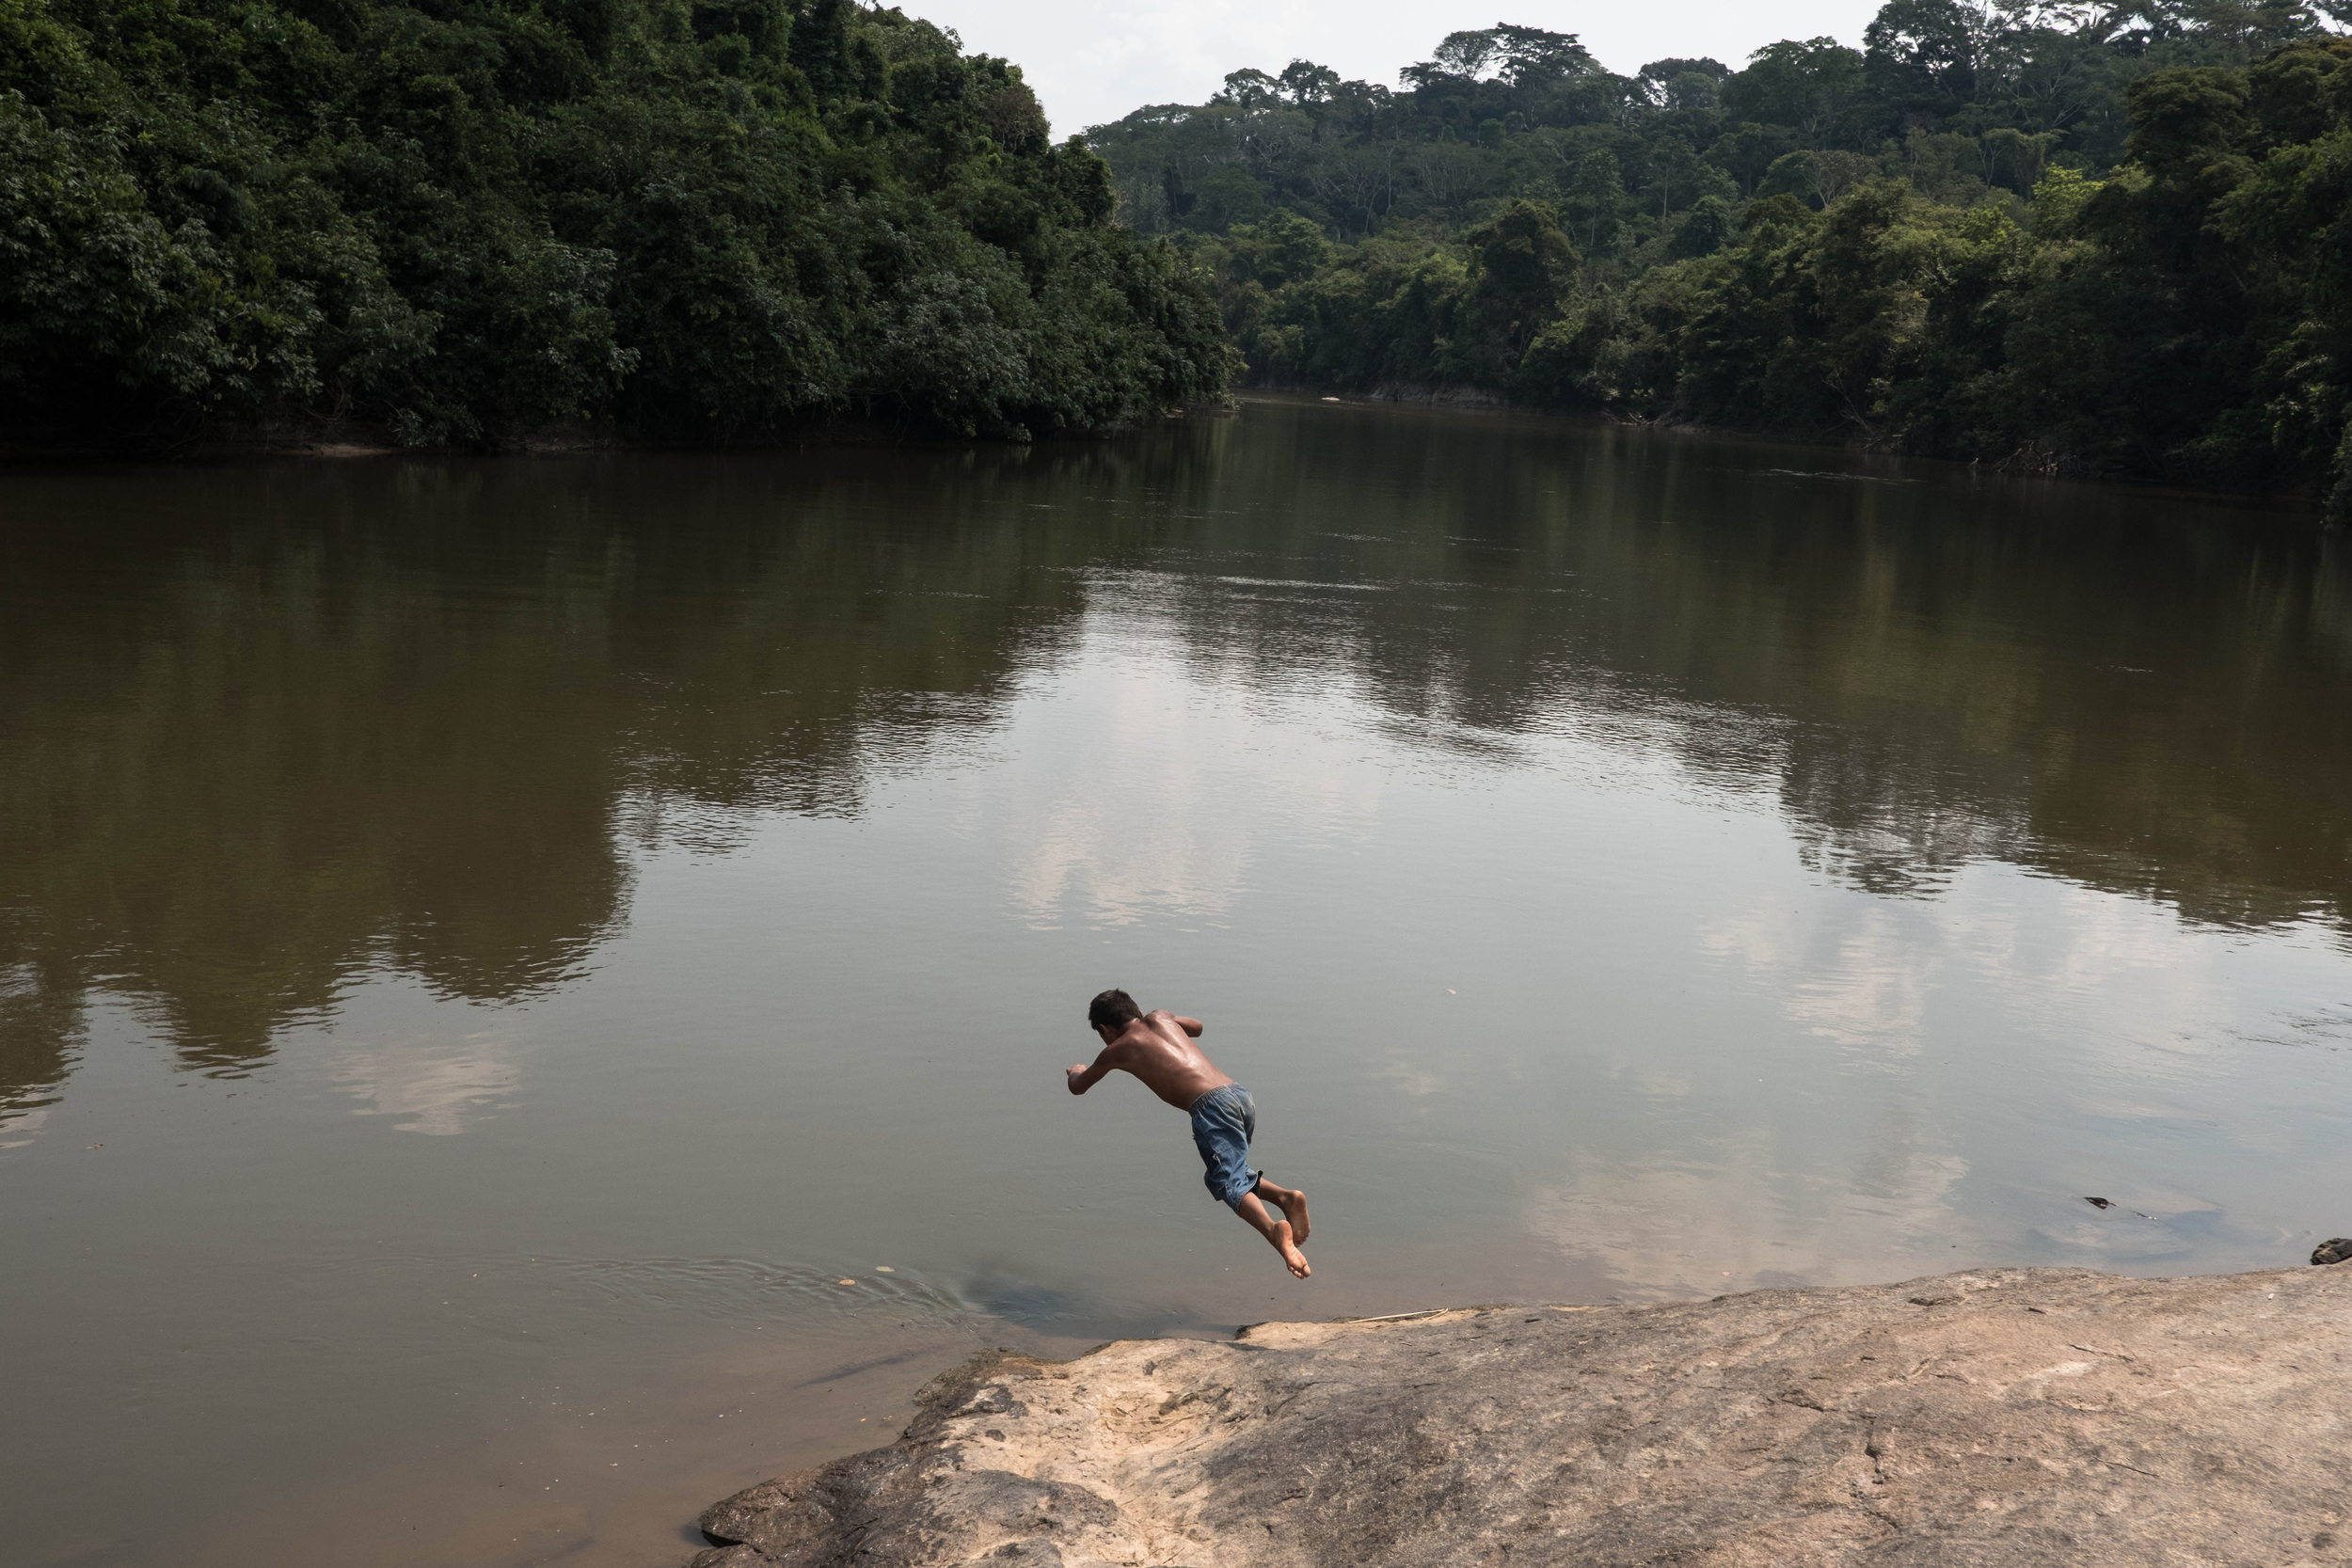 A small boy in mid-air jumping off a wide riverbank into a dark river surrounded by thick rainforest